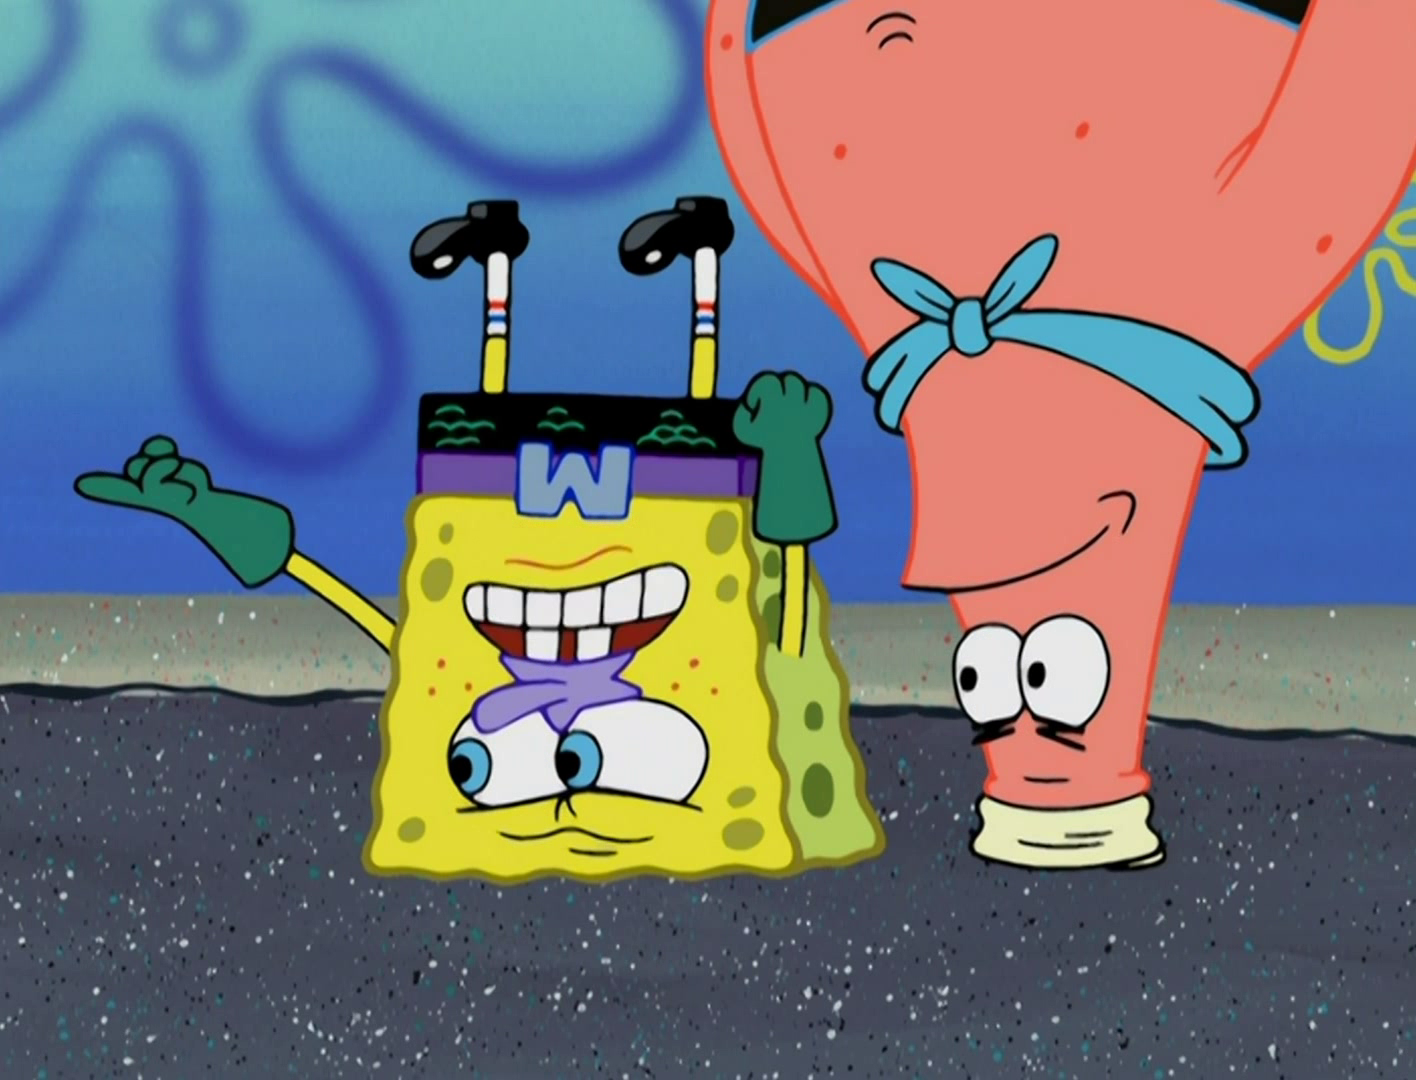 spongebob squarepants nausea fuel tv tropes